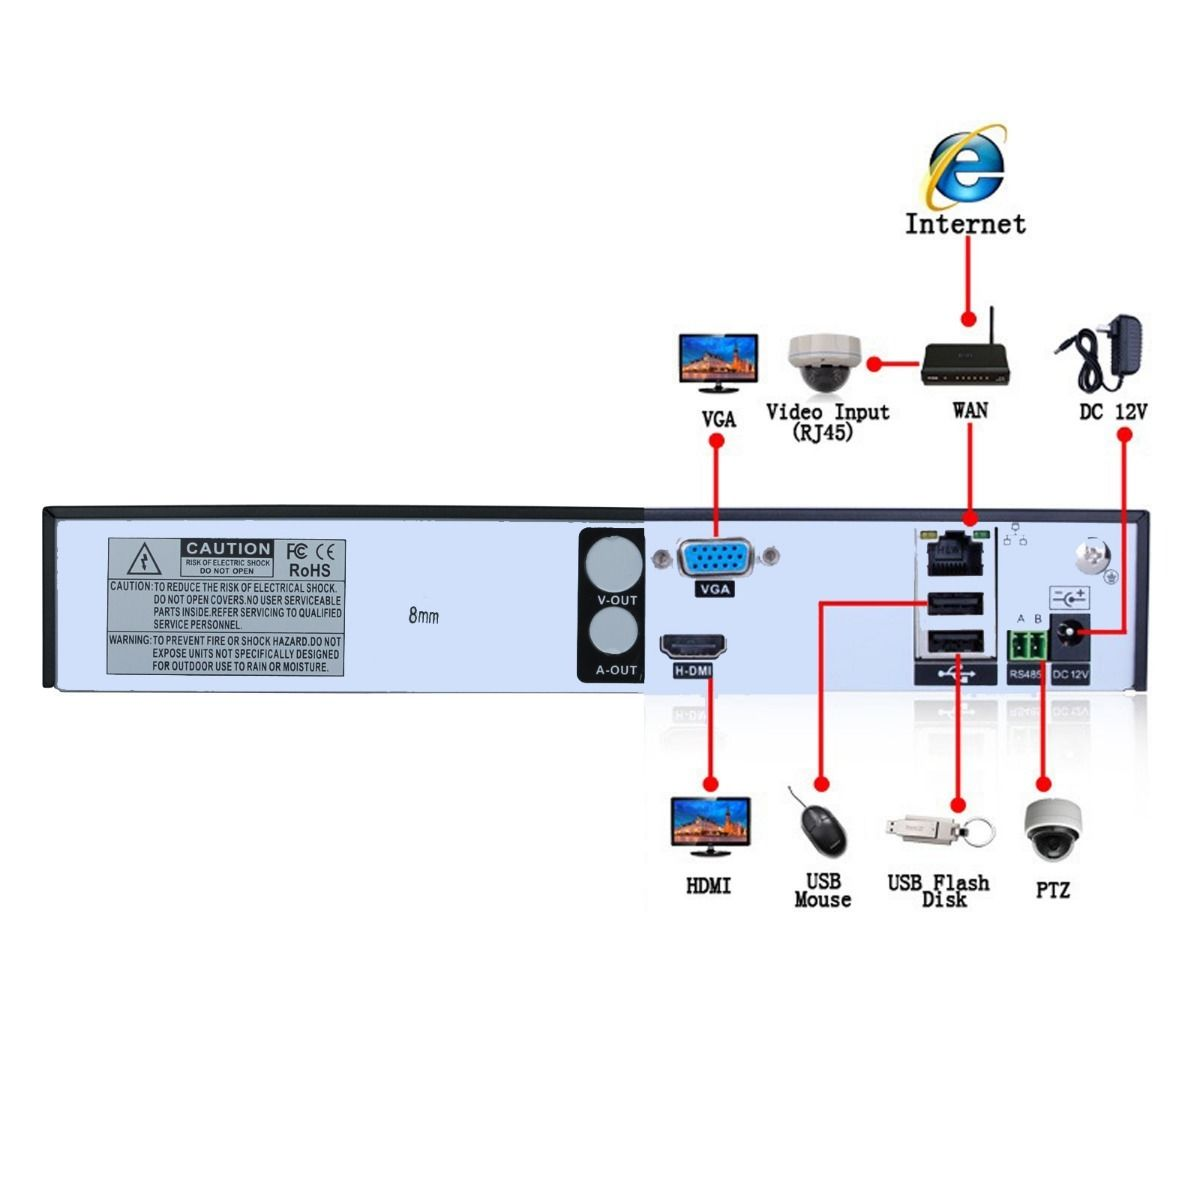 Nvr Wiring Diagram Model Engineer What S Poe Ip Surveillance Camera Cat5 Cat Cctv Image Images Rj11